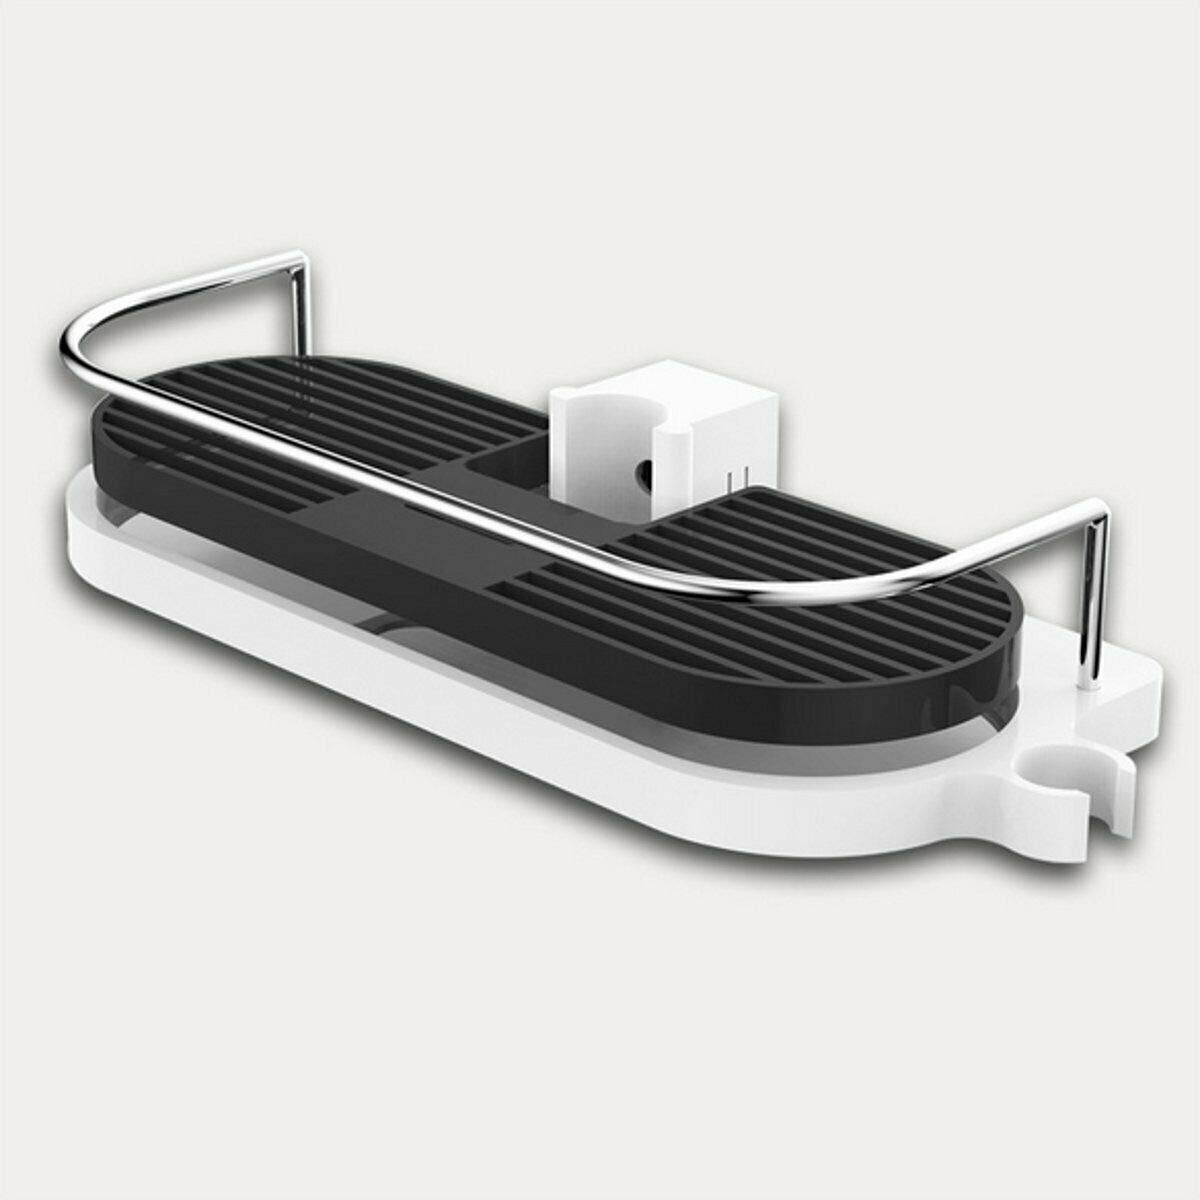 Hollow Tray Holder Bathroom Pole Shelf Shower Bath Storage Caddy Rack Organiser